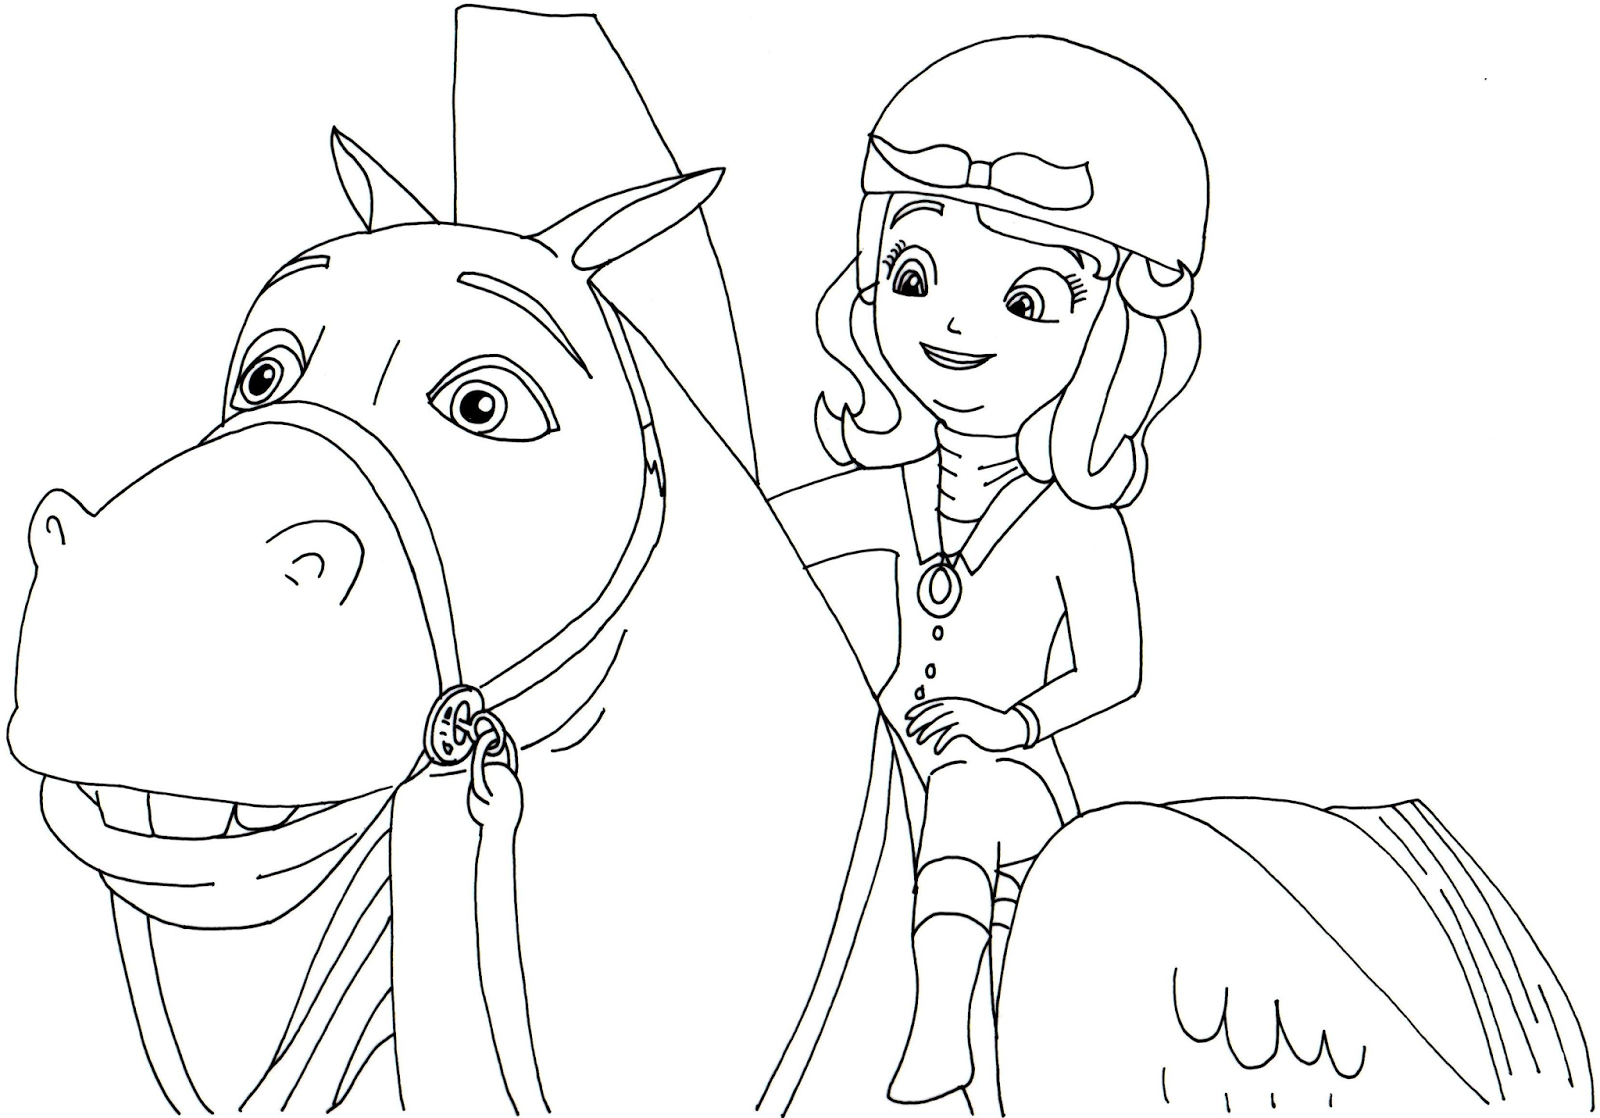 sophia coloring pages - sofia the first coloring pages april 2014